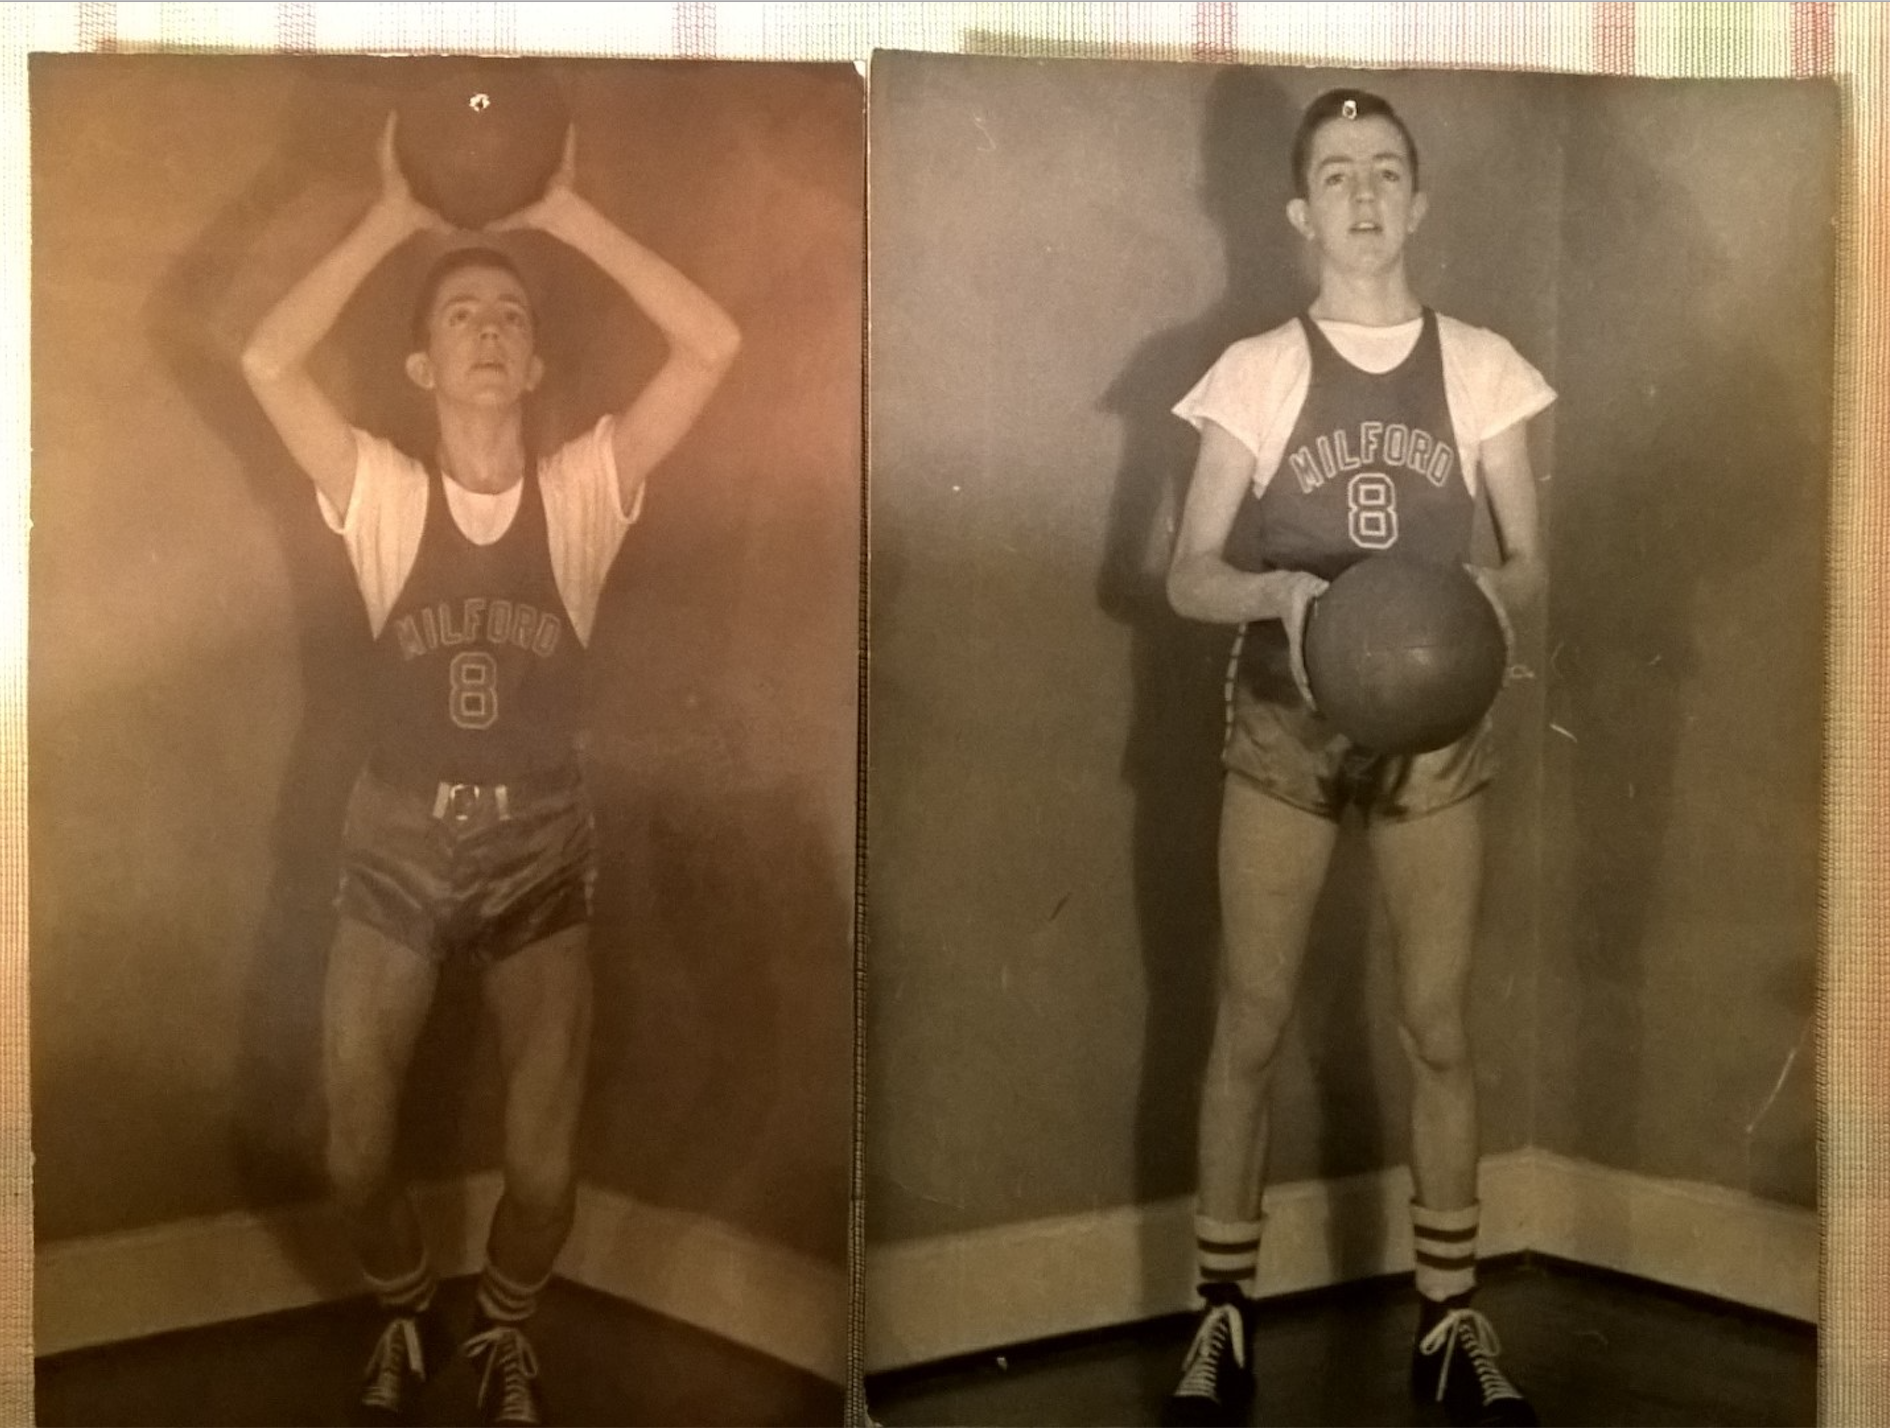 vintage photos of high school basketball player